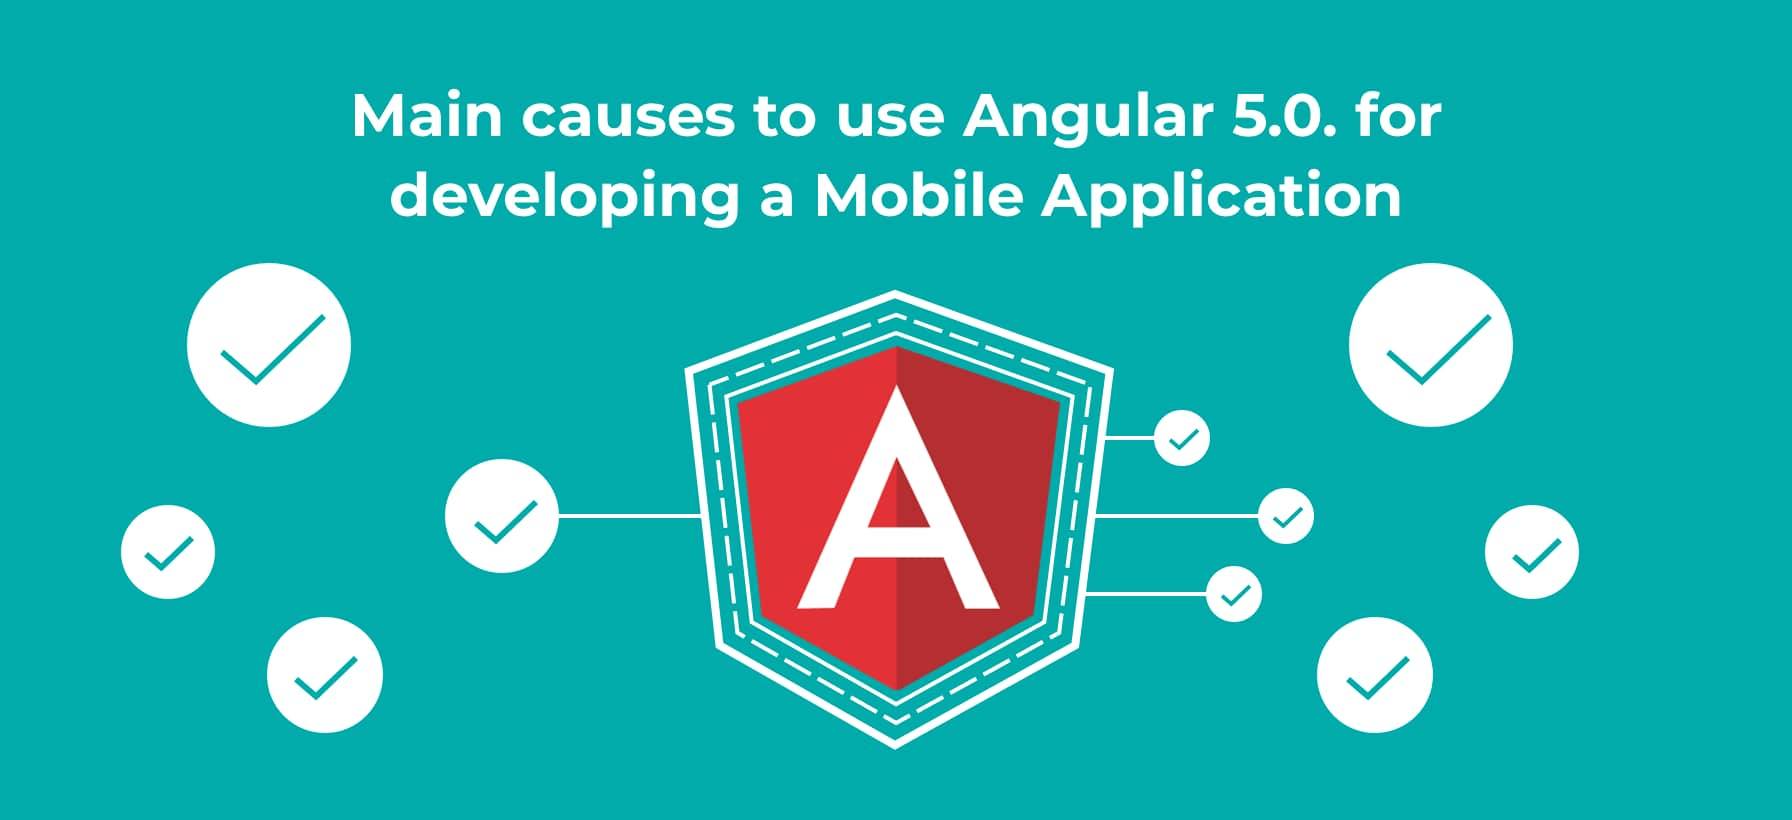 main-causes-to-use-angular